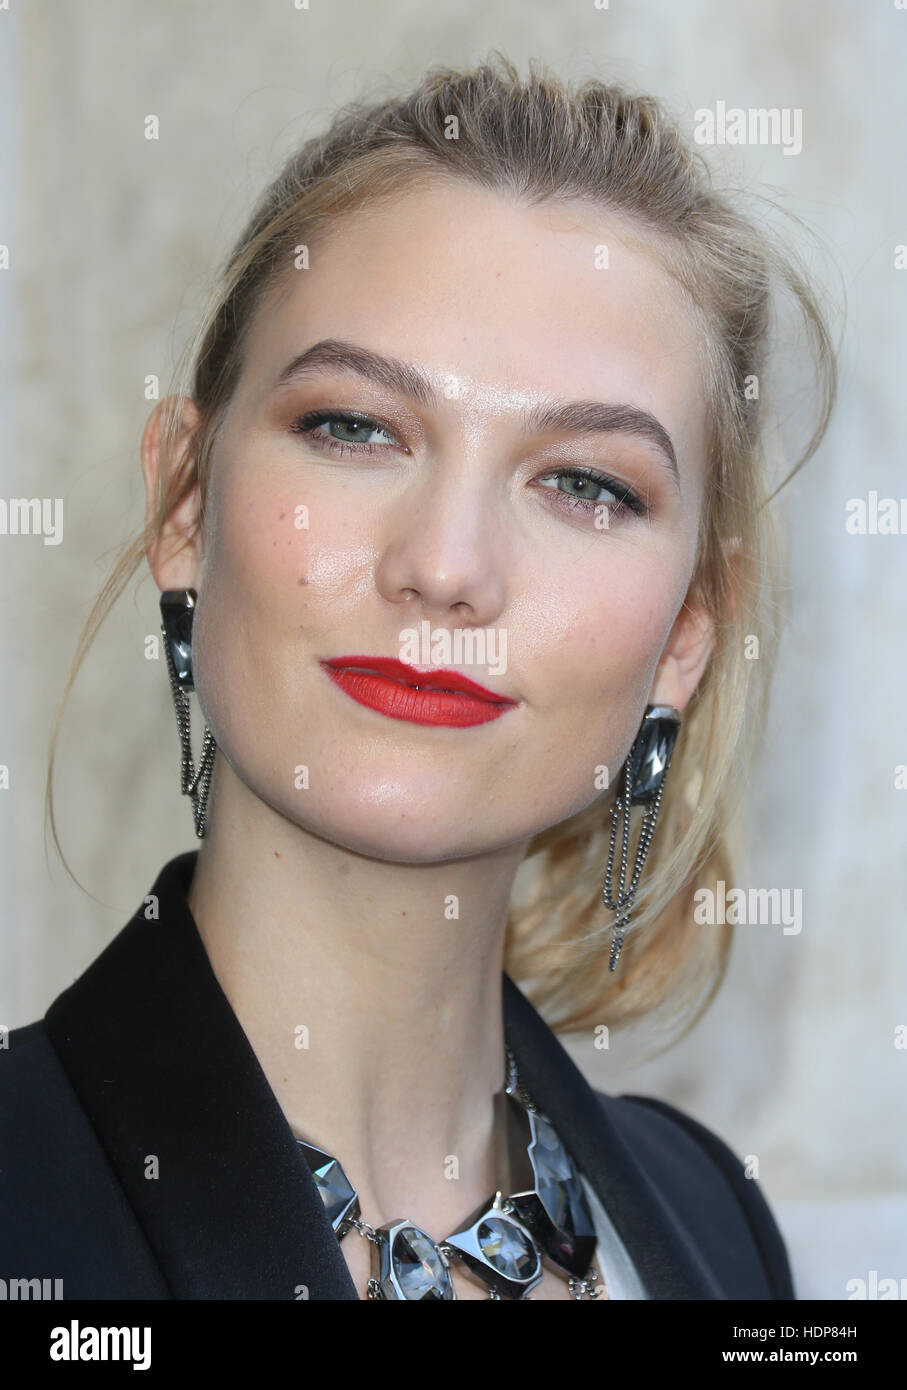 566d46687ffc Karlie Kloss makes an in-store appearance at Swarovski Featuring  Karlie  Kloss Where  Los Angeles